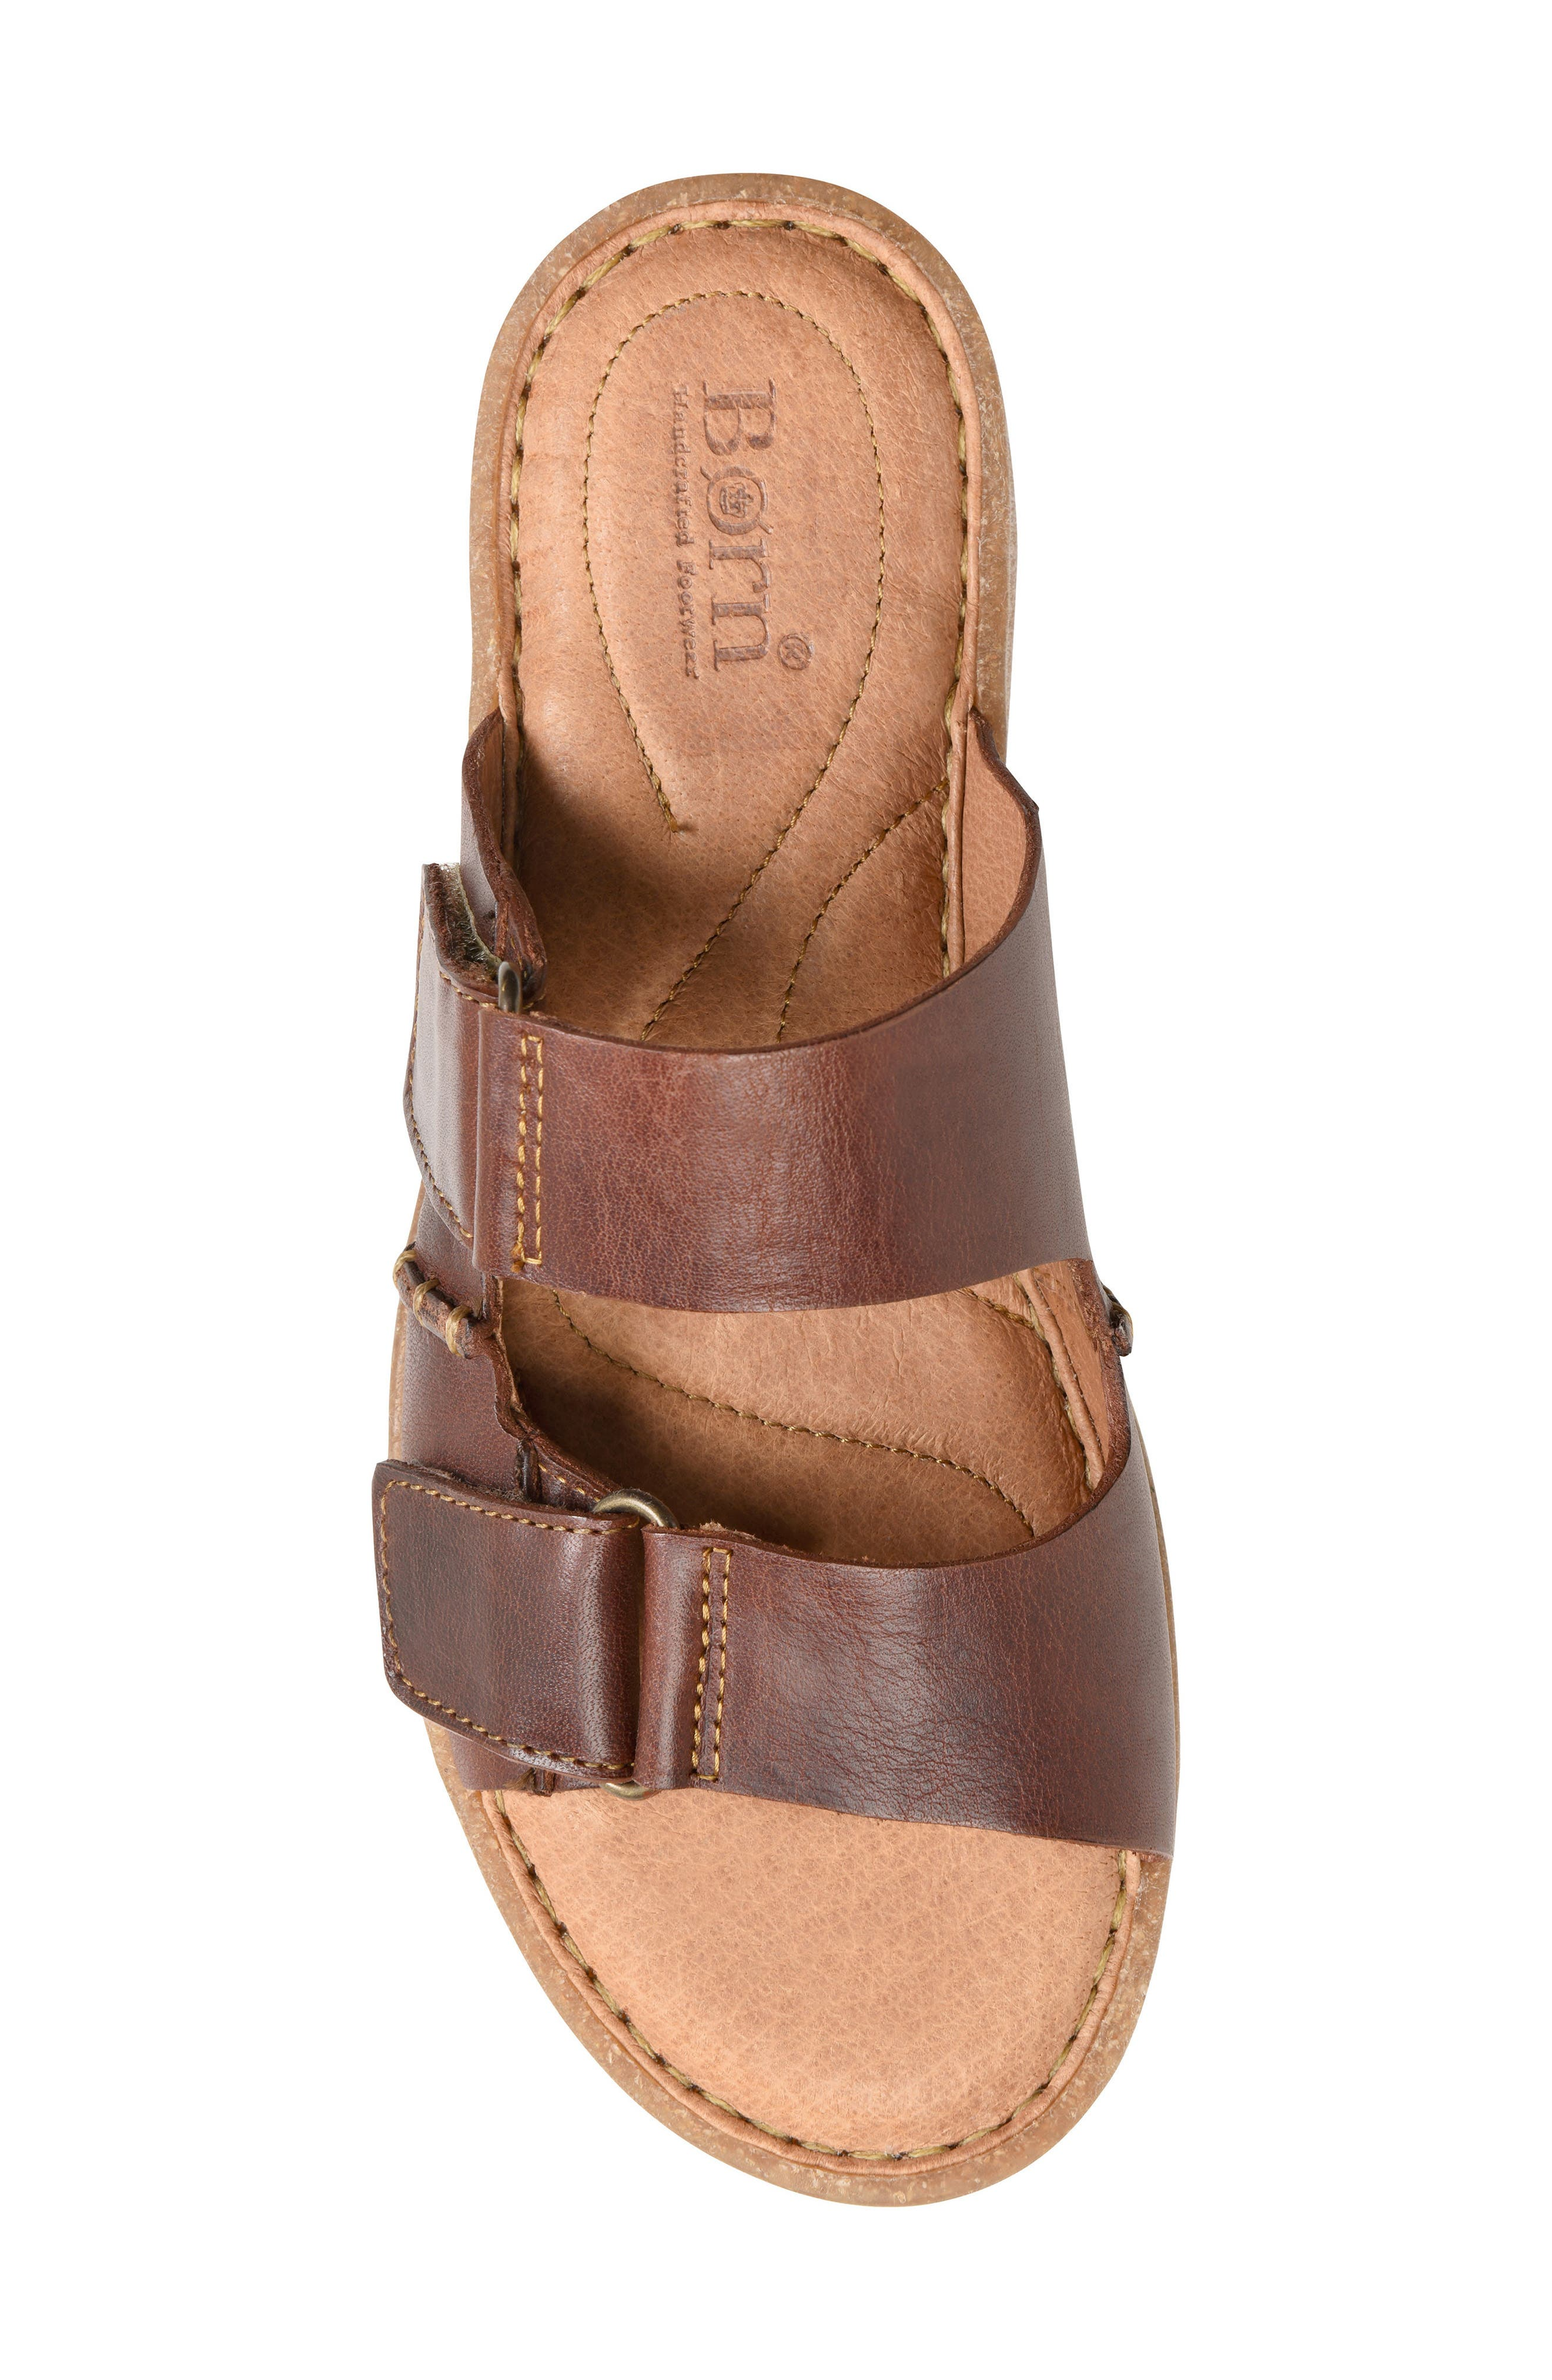 Dominica Sandal,                             Alternate thumbnail 5, color,                             Rust Leather